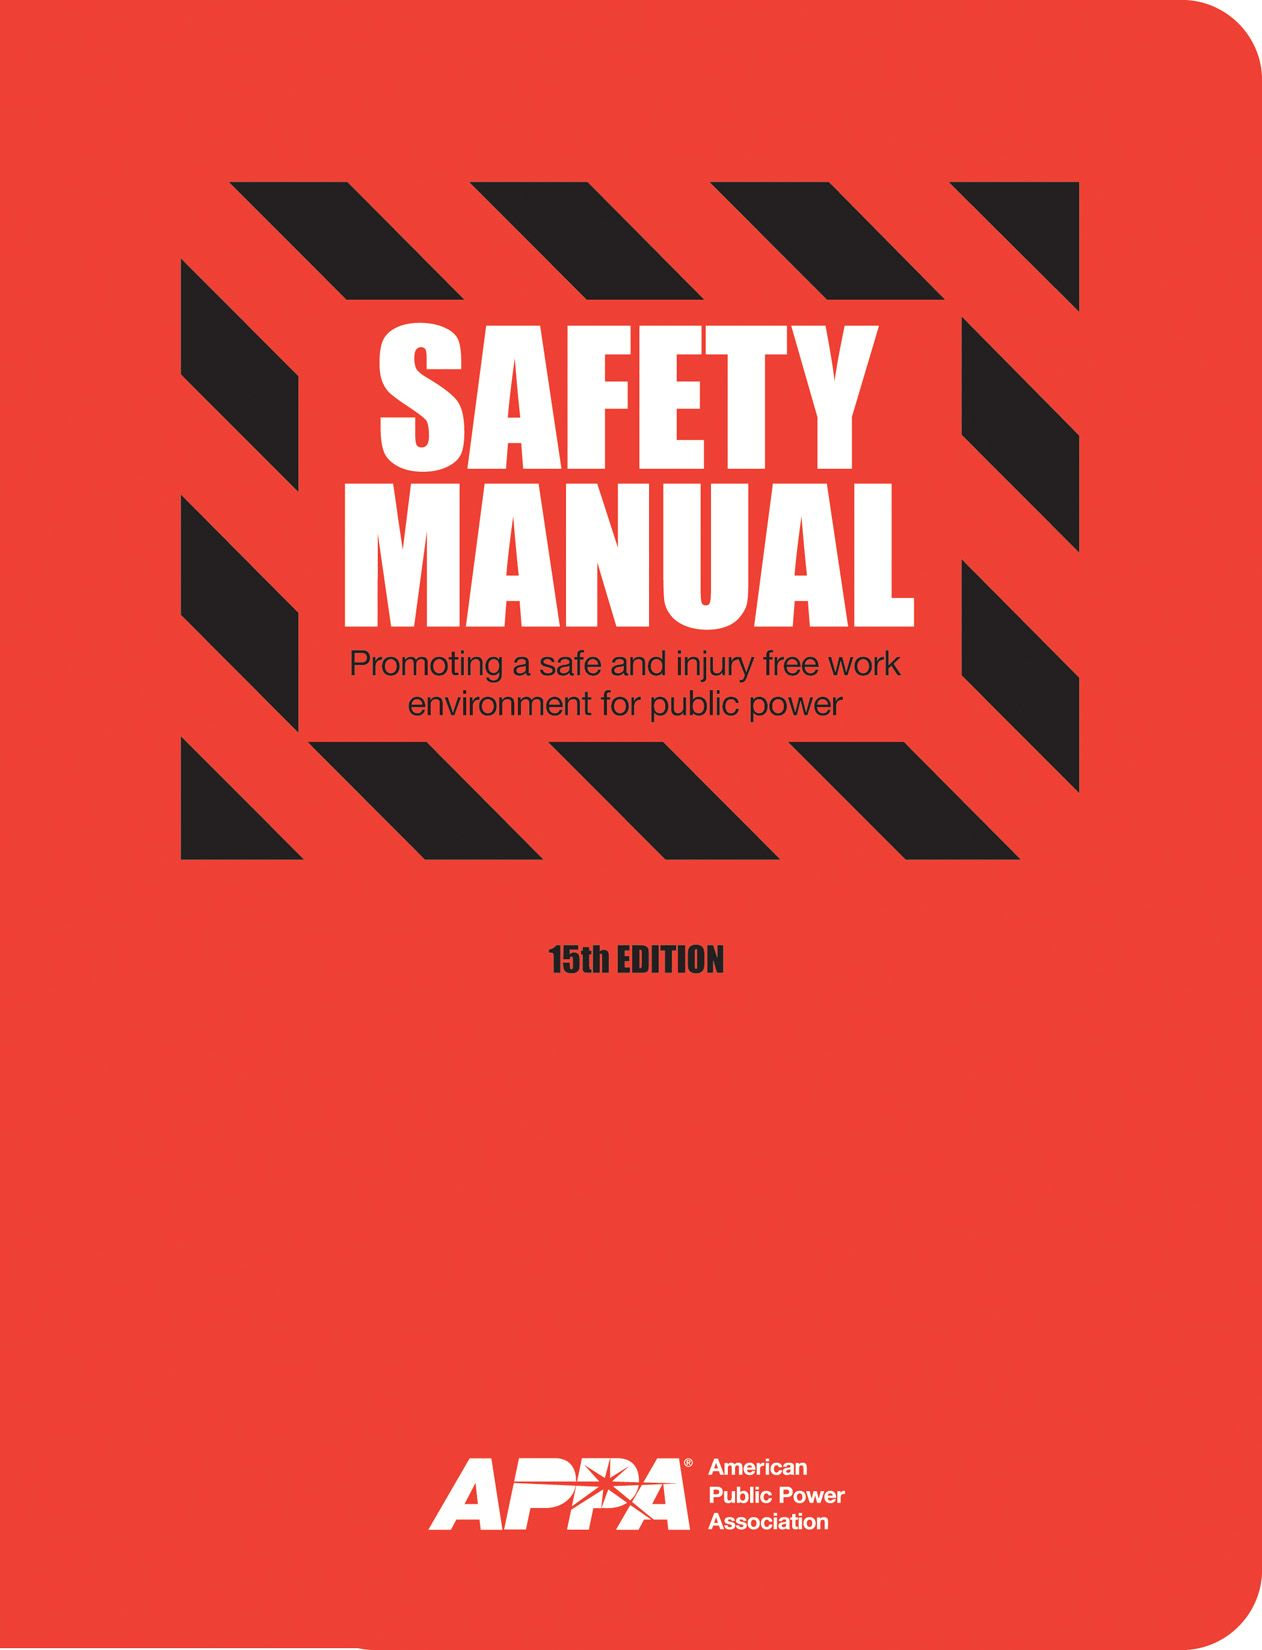 Safety Manual   Cover Design